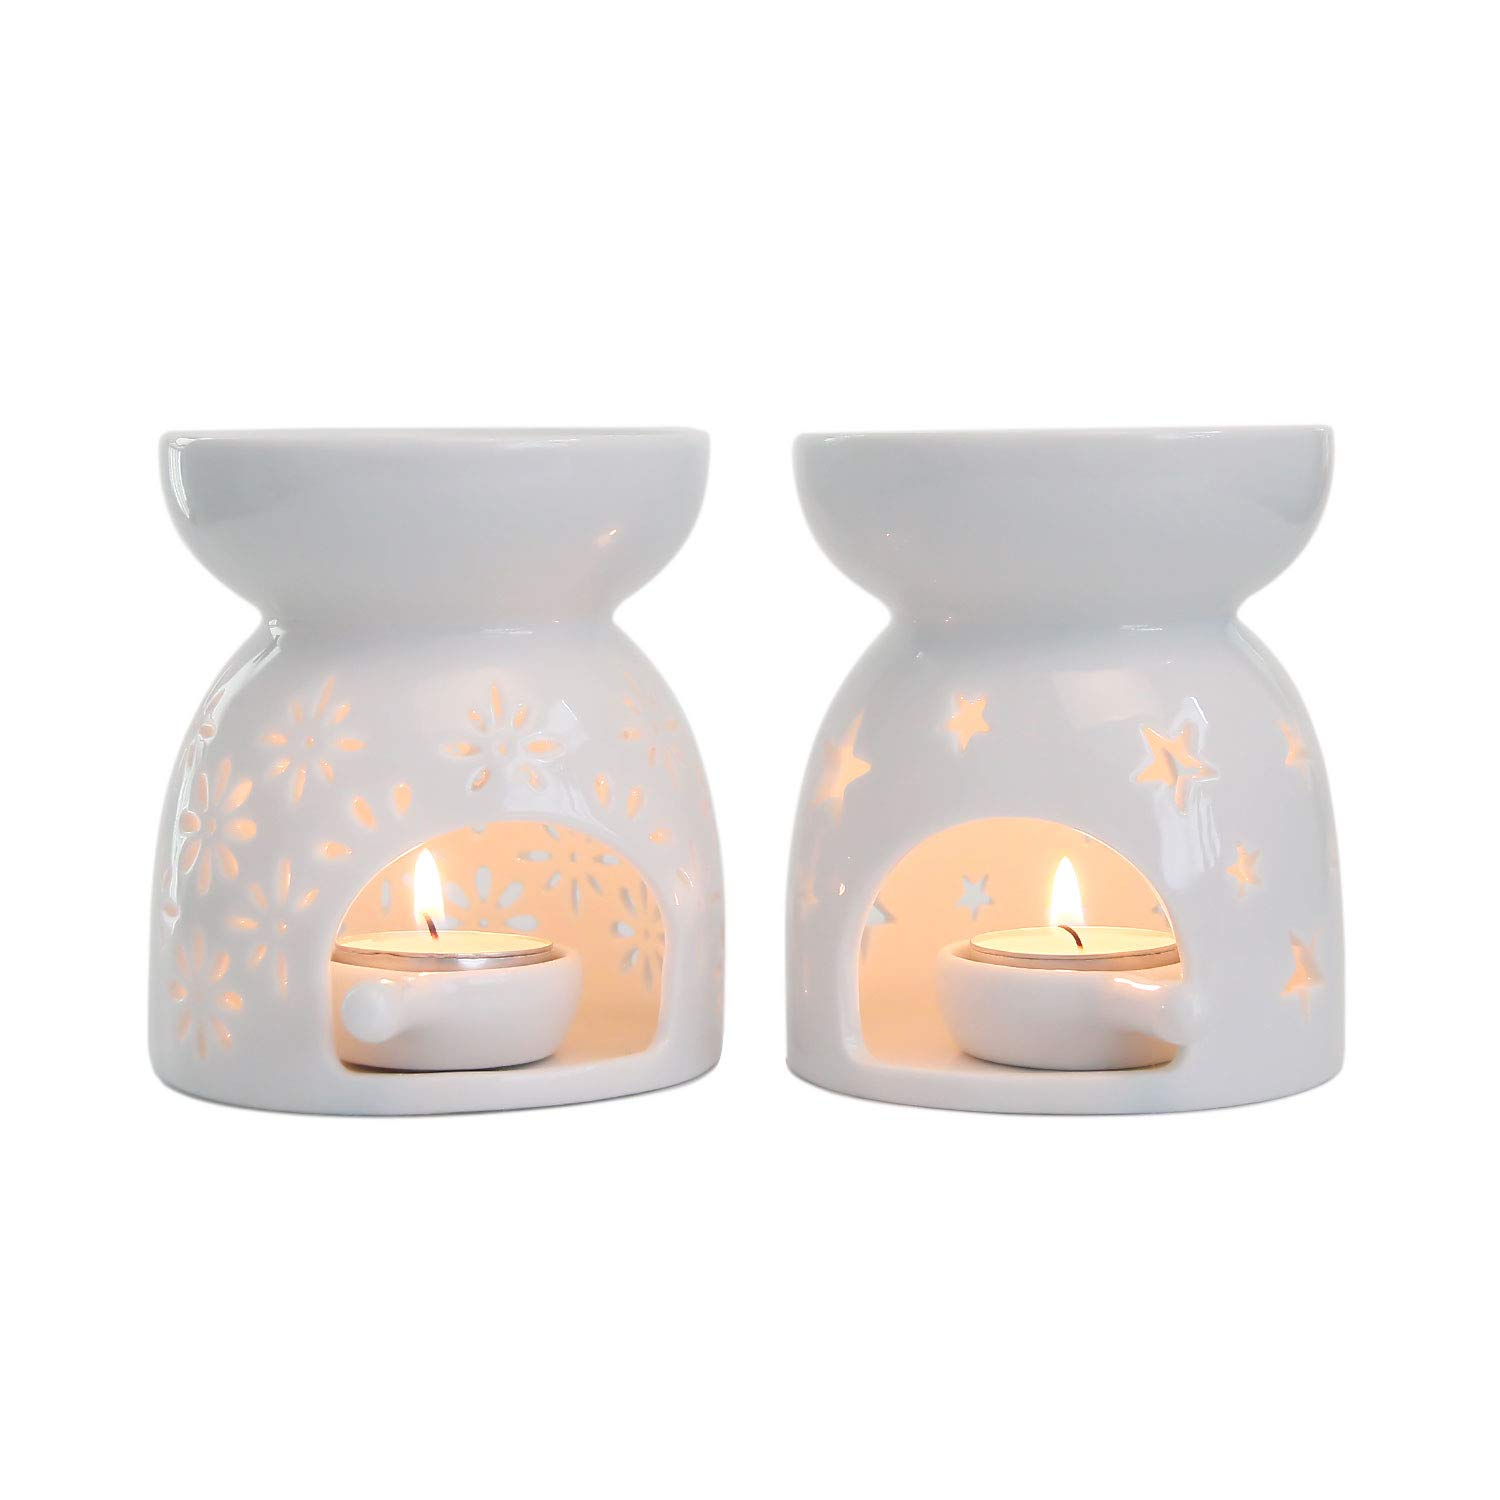 Mucihom Ceramic Tea Light Candle Holder Oil Burner, Essential Oil Incense Aroma Diffuser Furnace Home Decoration Romantic Gift White Set of 2 by Mucihom